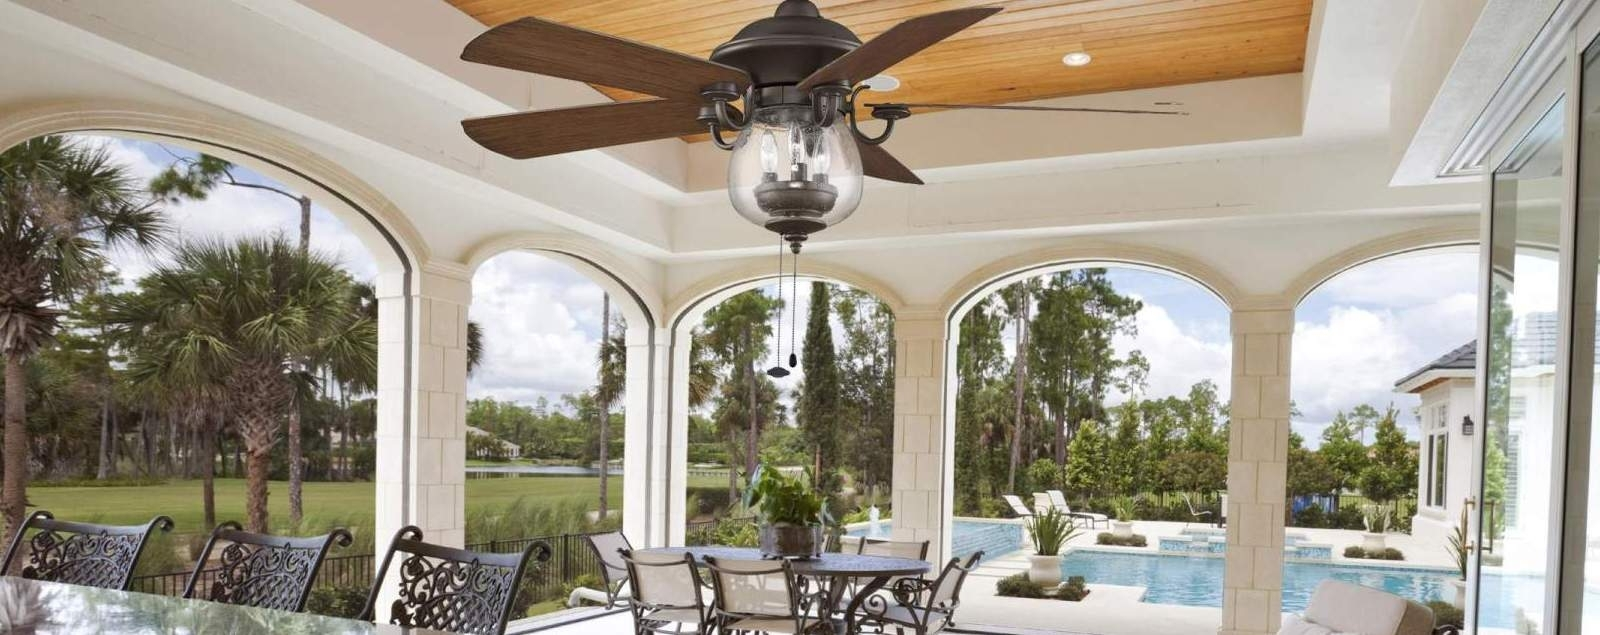 2018 Quality Outdoor Ceiling Fans For Outdoor Ceiling Fans – Shop Wet, Dry, And Damp Rated Outdoor Fans (View 6 of 20)